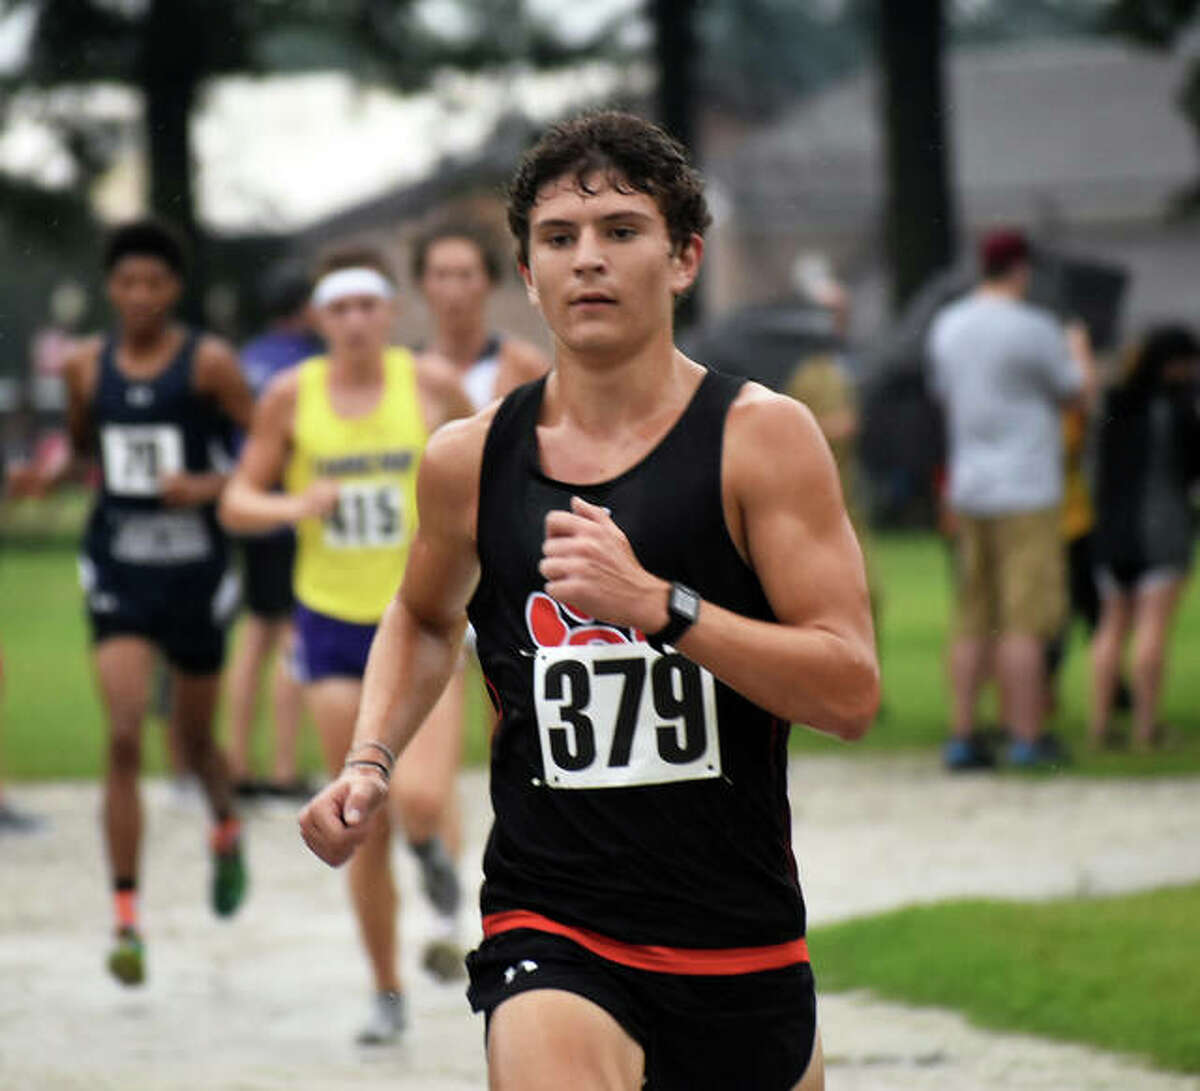 Edwardsville's Ryan Luitjohan runs down a rock path during the first mile of the Granite City Invitational.